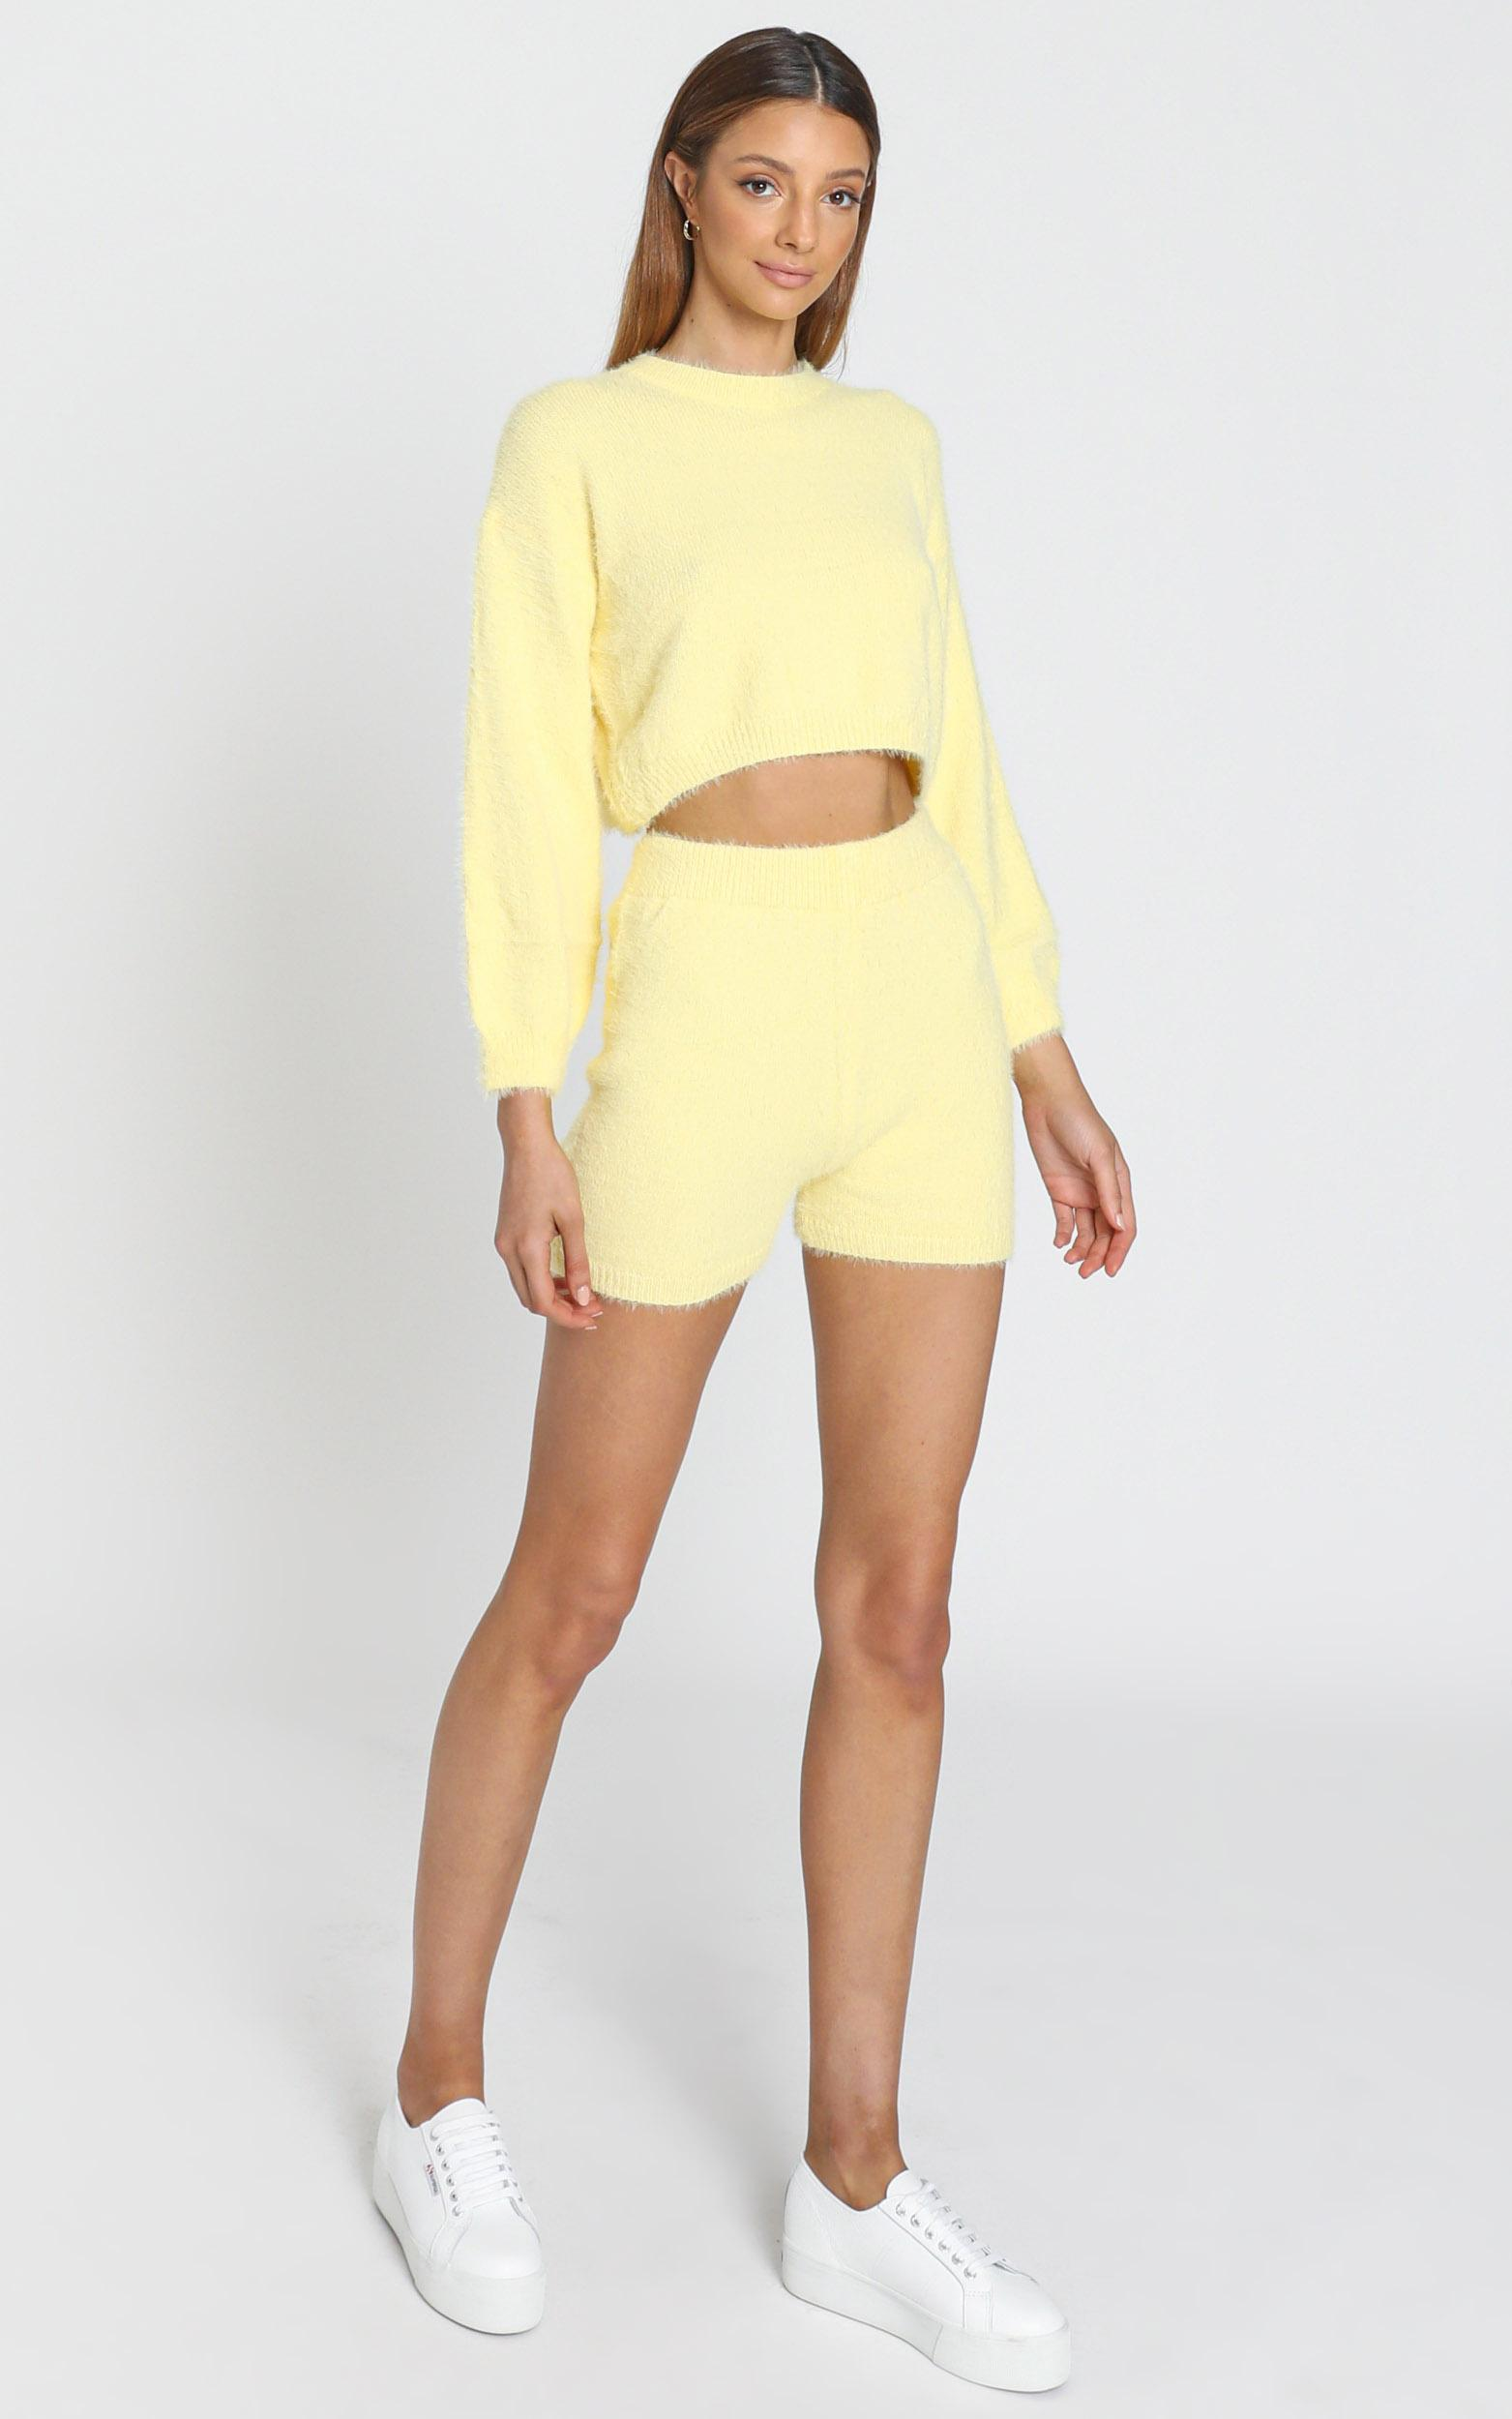 Loretta Fluffy Knit Two Piece Set in Yellow - S, Yellow, hi-res image number null